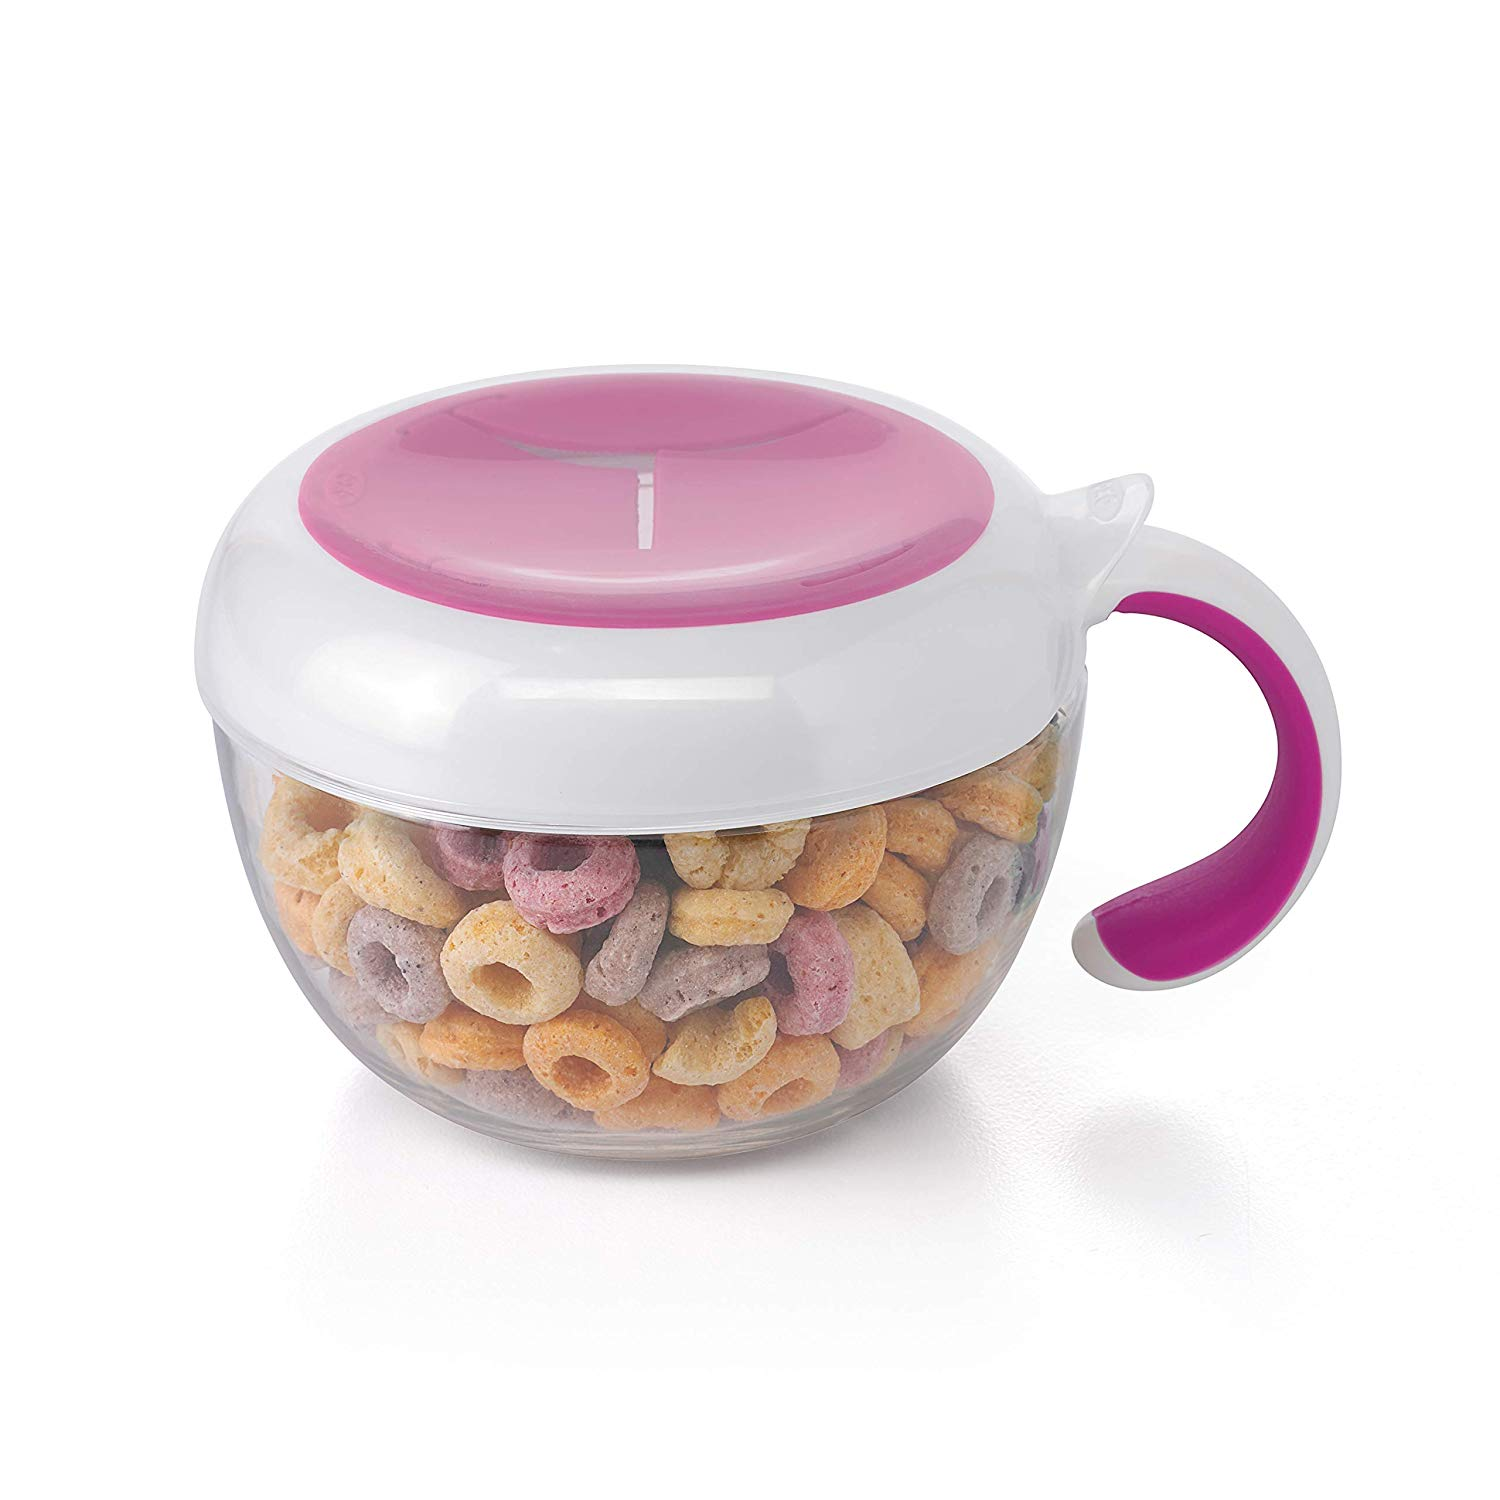 Teal OXO Tot Flippy Snack Cup with Travel Lid